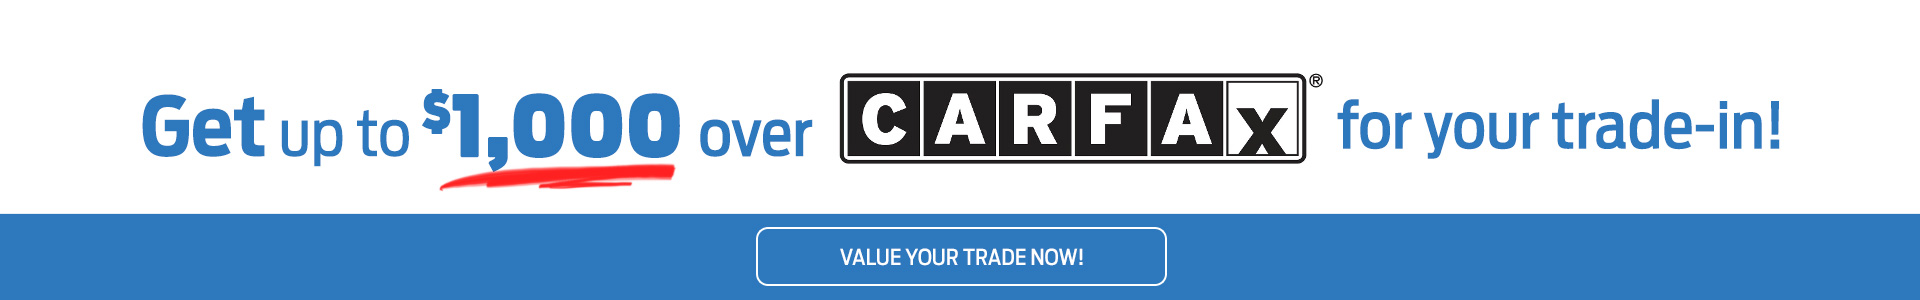 Carfax Trade In Offer Srp